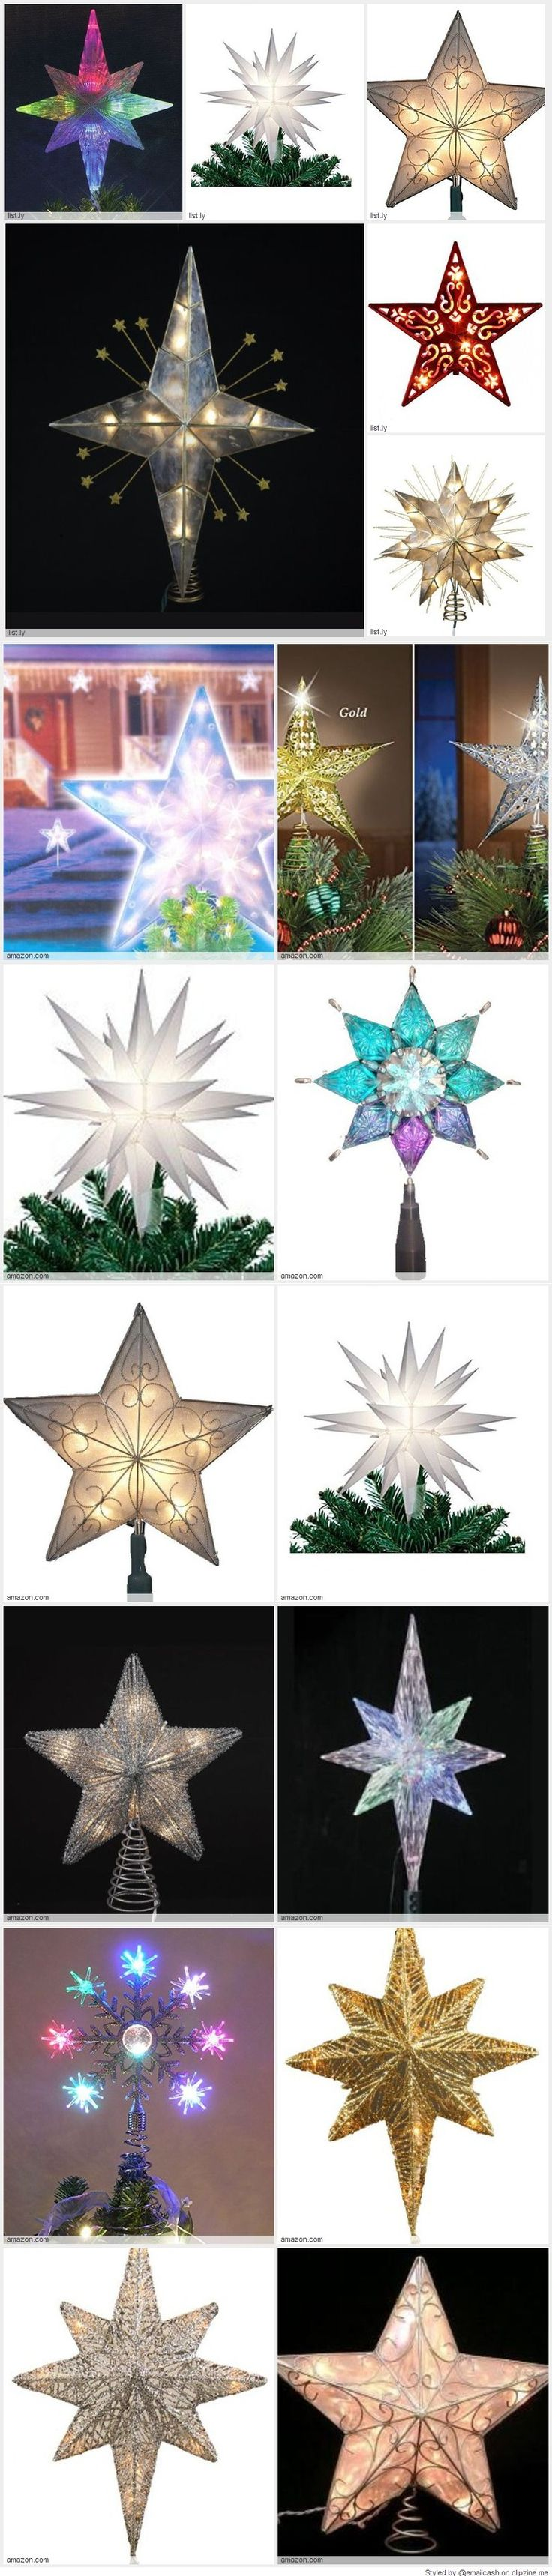 Cheap Lighted Star Christmas Tree Topper - Looking for unique lighted Christmas star tree toppers ideas? We have done all of the work for you, Look at the star Christmas tree toppers that we found.